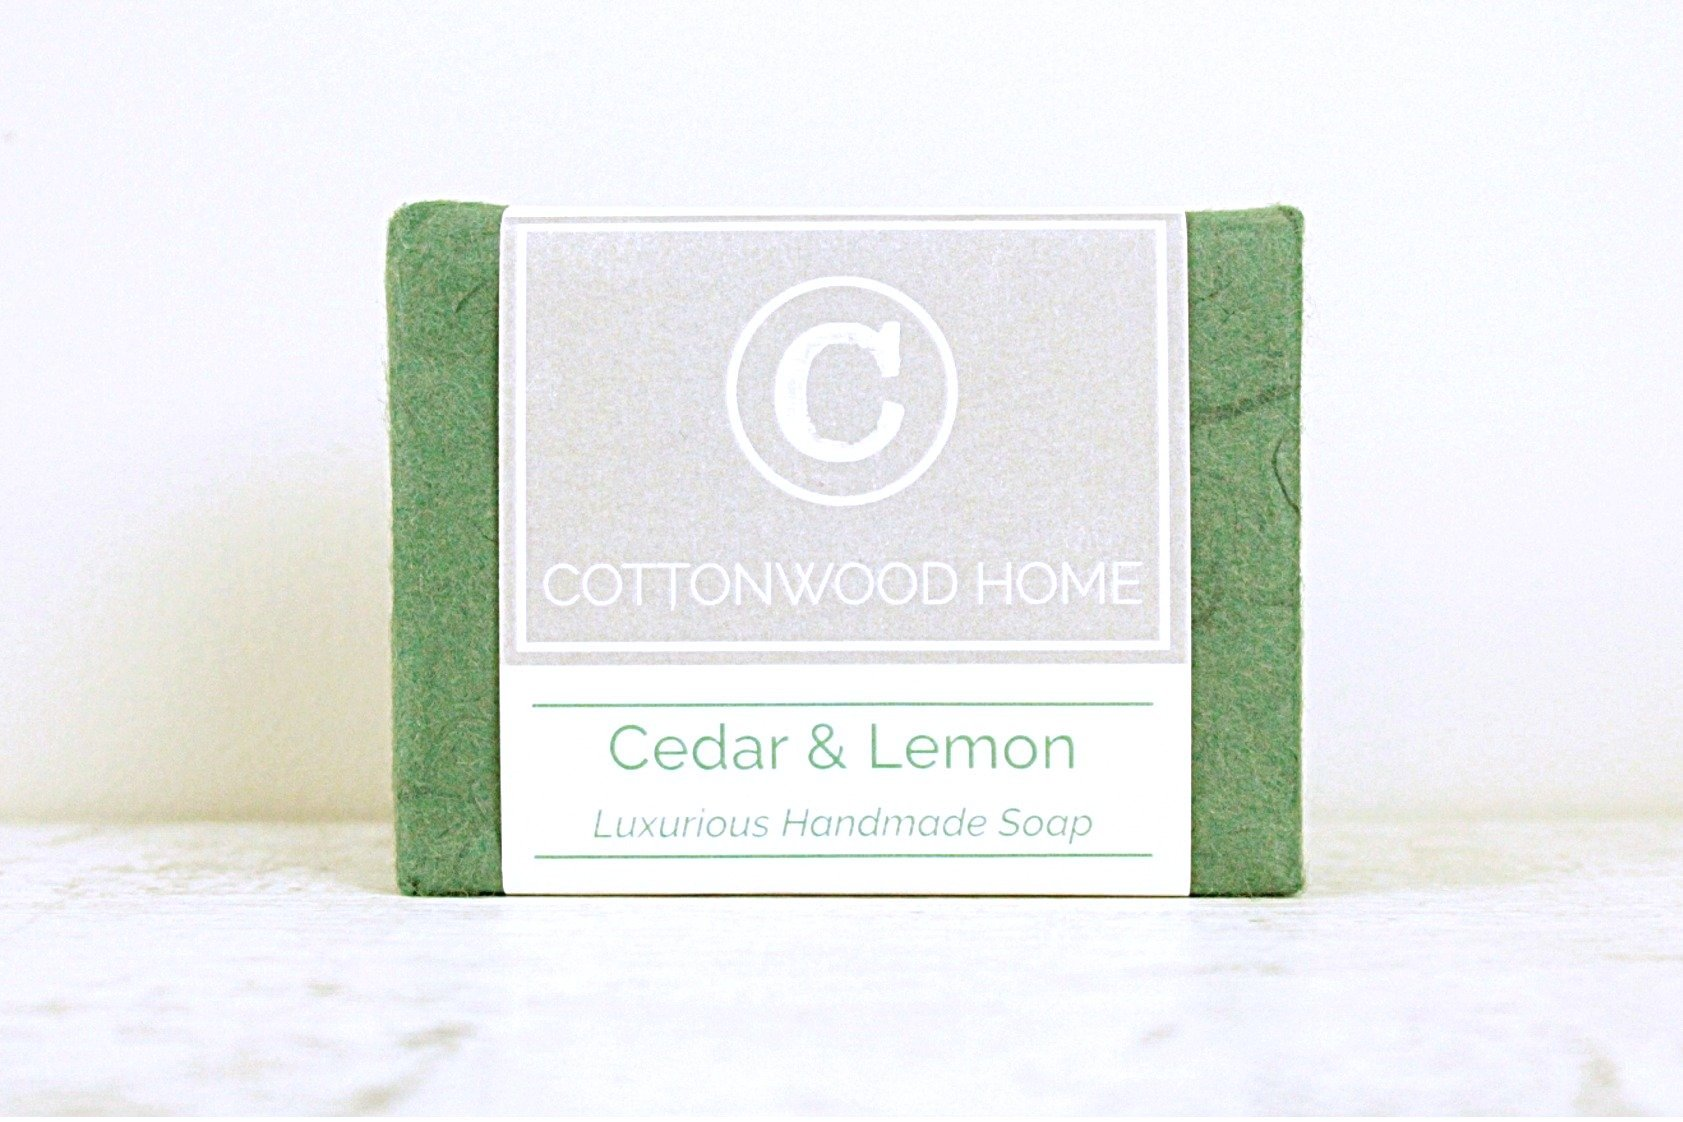 Cottonwood Soap - Cedar & Lemon